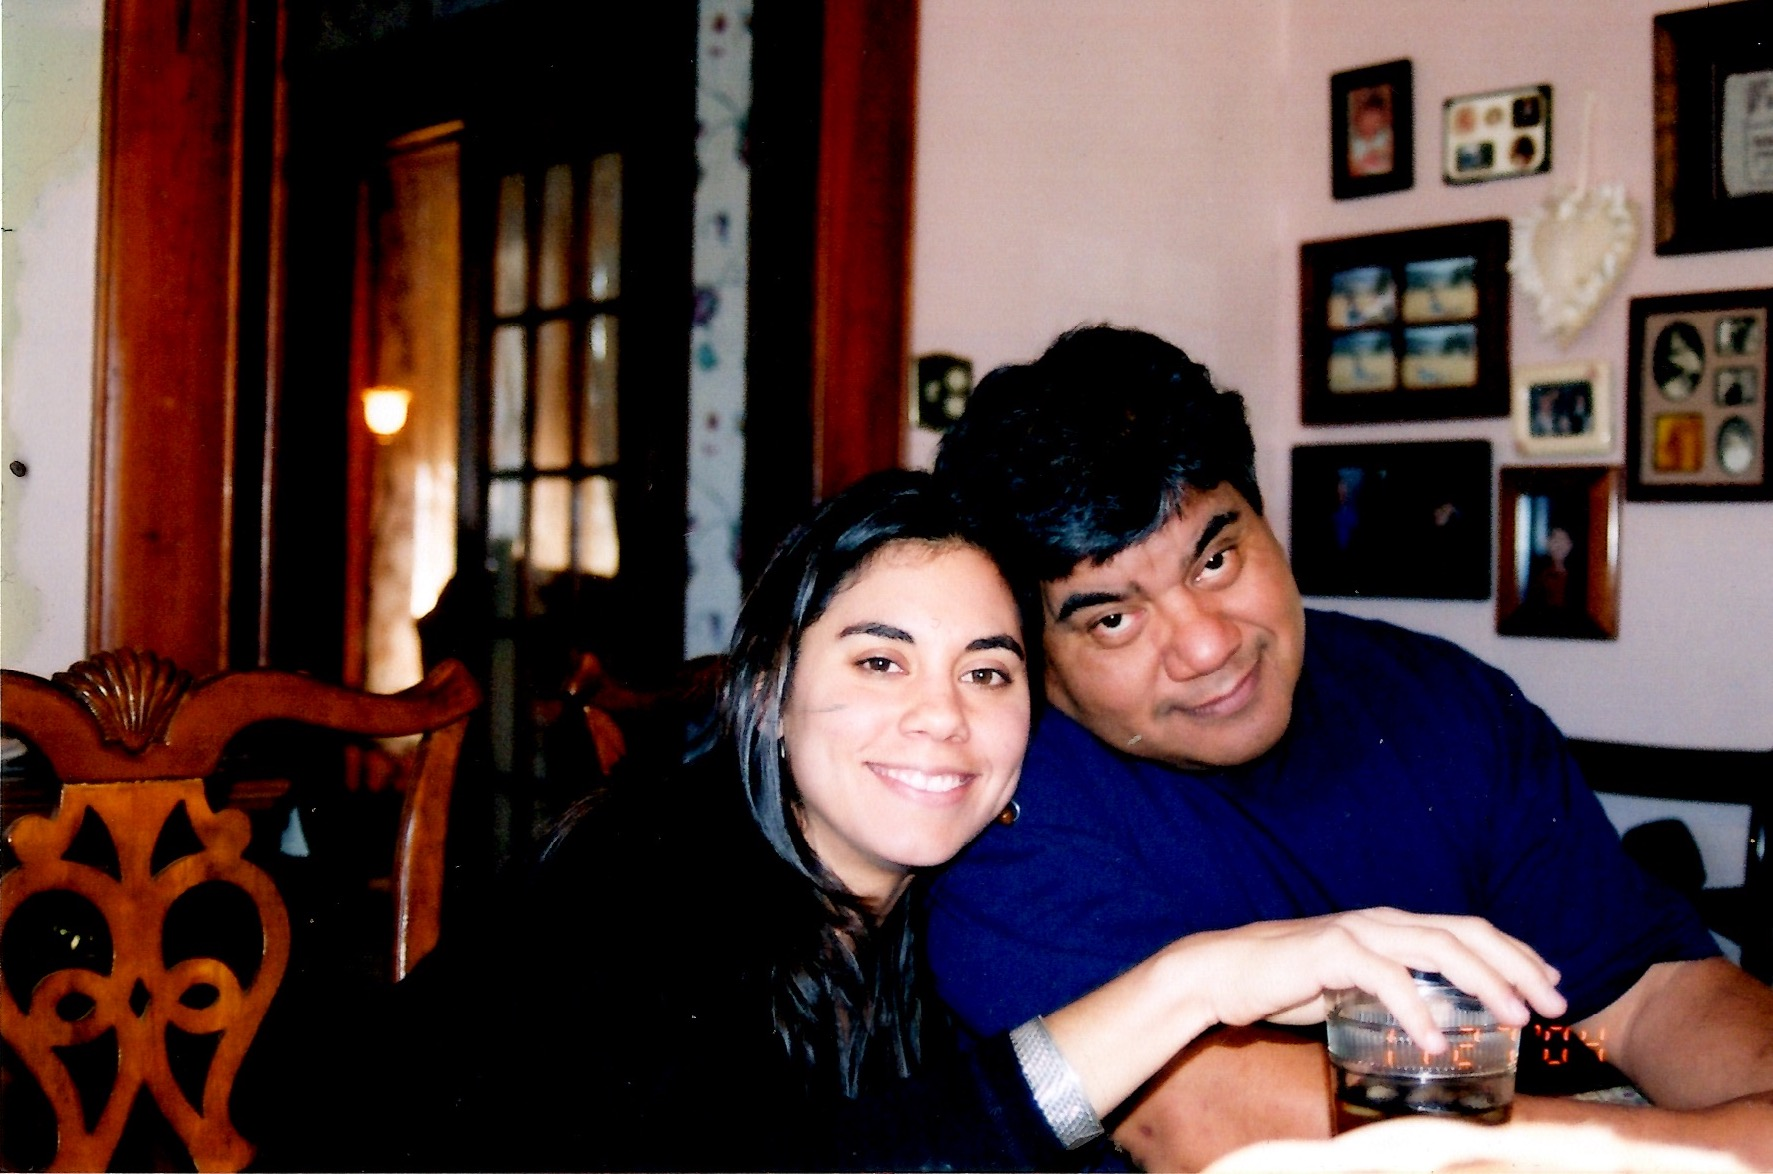 My dad and I, 2004